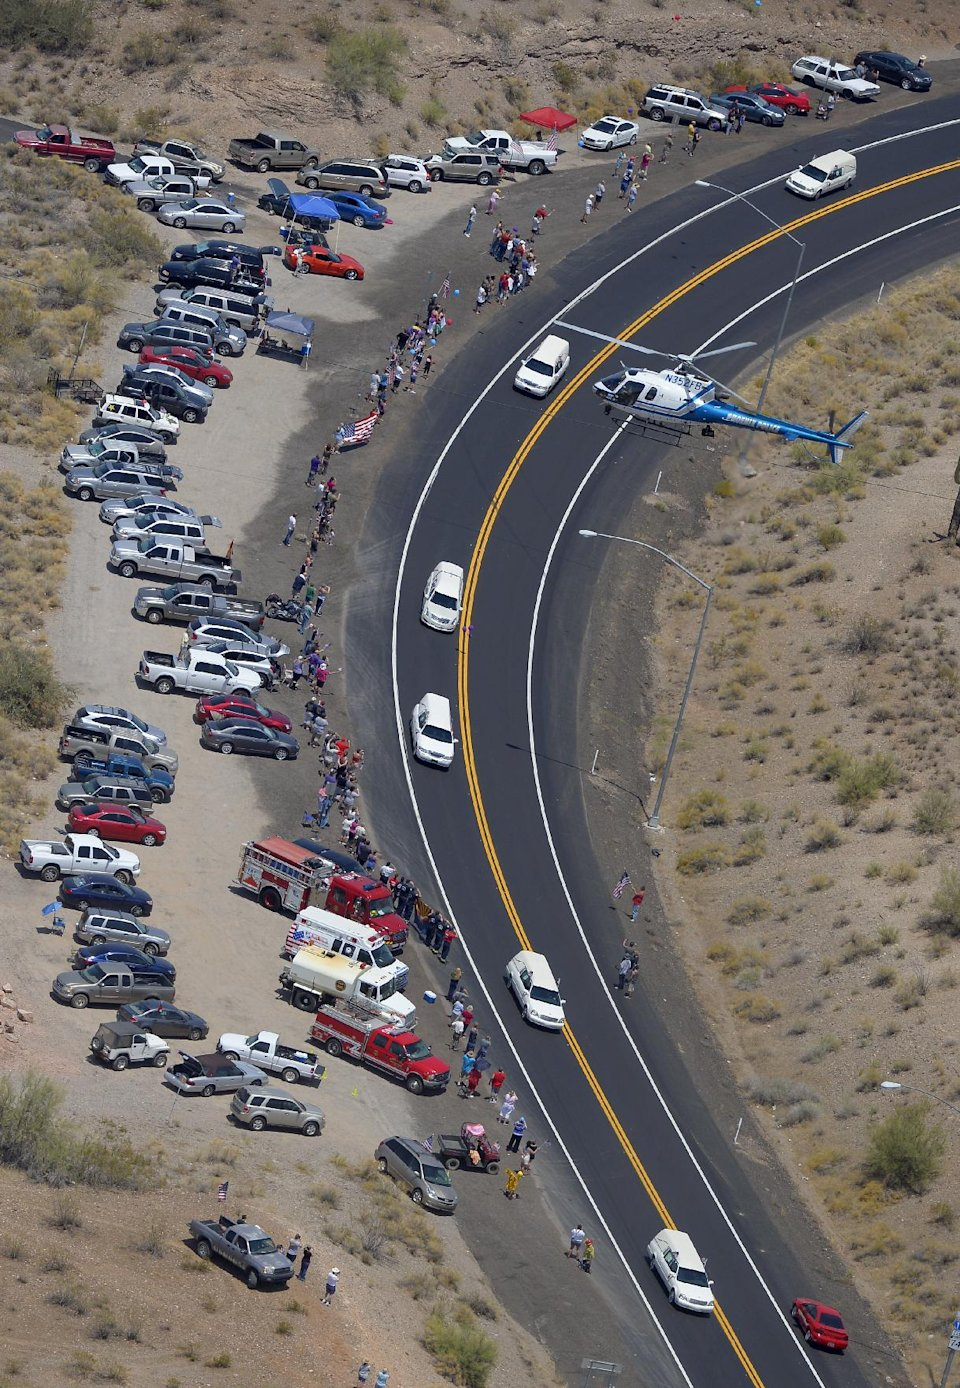 A procession of 19 hearses drives through the desert, Sunday, July 7, 2013, Near Morristown, Ariz, The elite crew of firefighters were overtaken by the out-of-control blaze as they tried to protect themselves from the flames under fire-resistant shields last Sunday. (AP Photo/Mark J. Terrill)